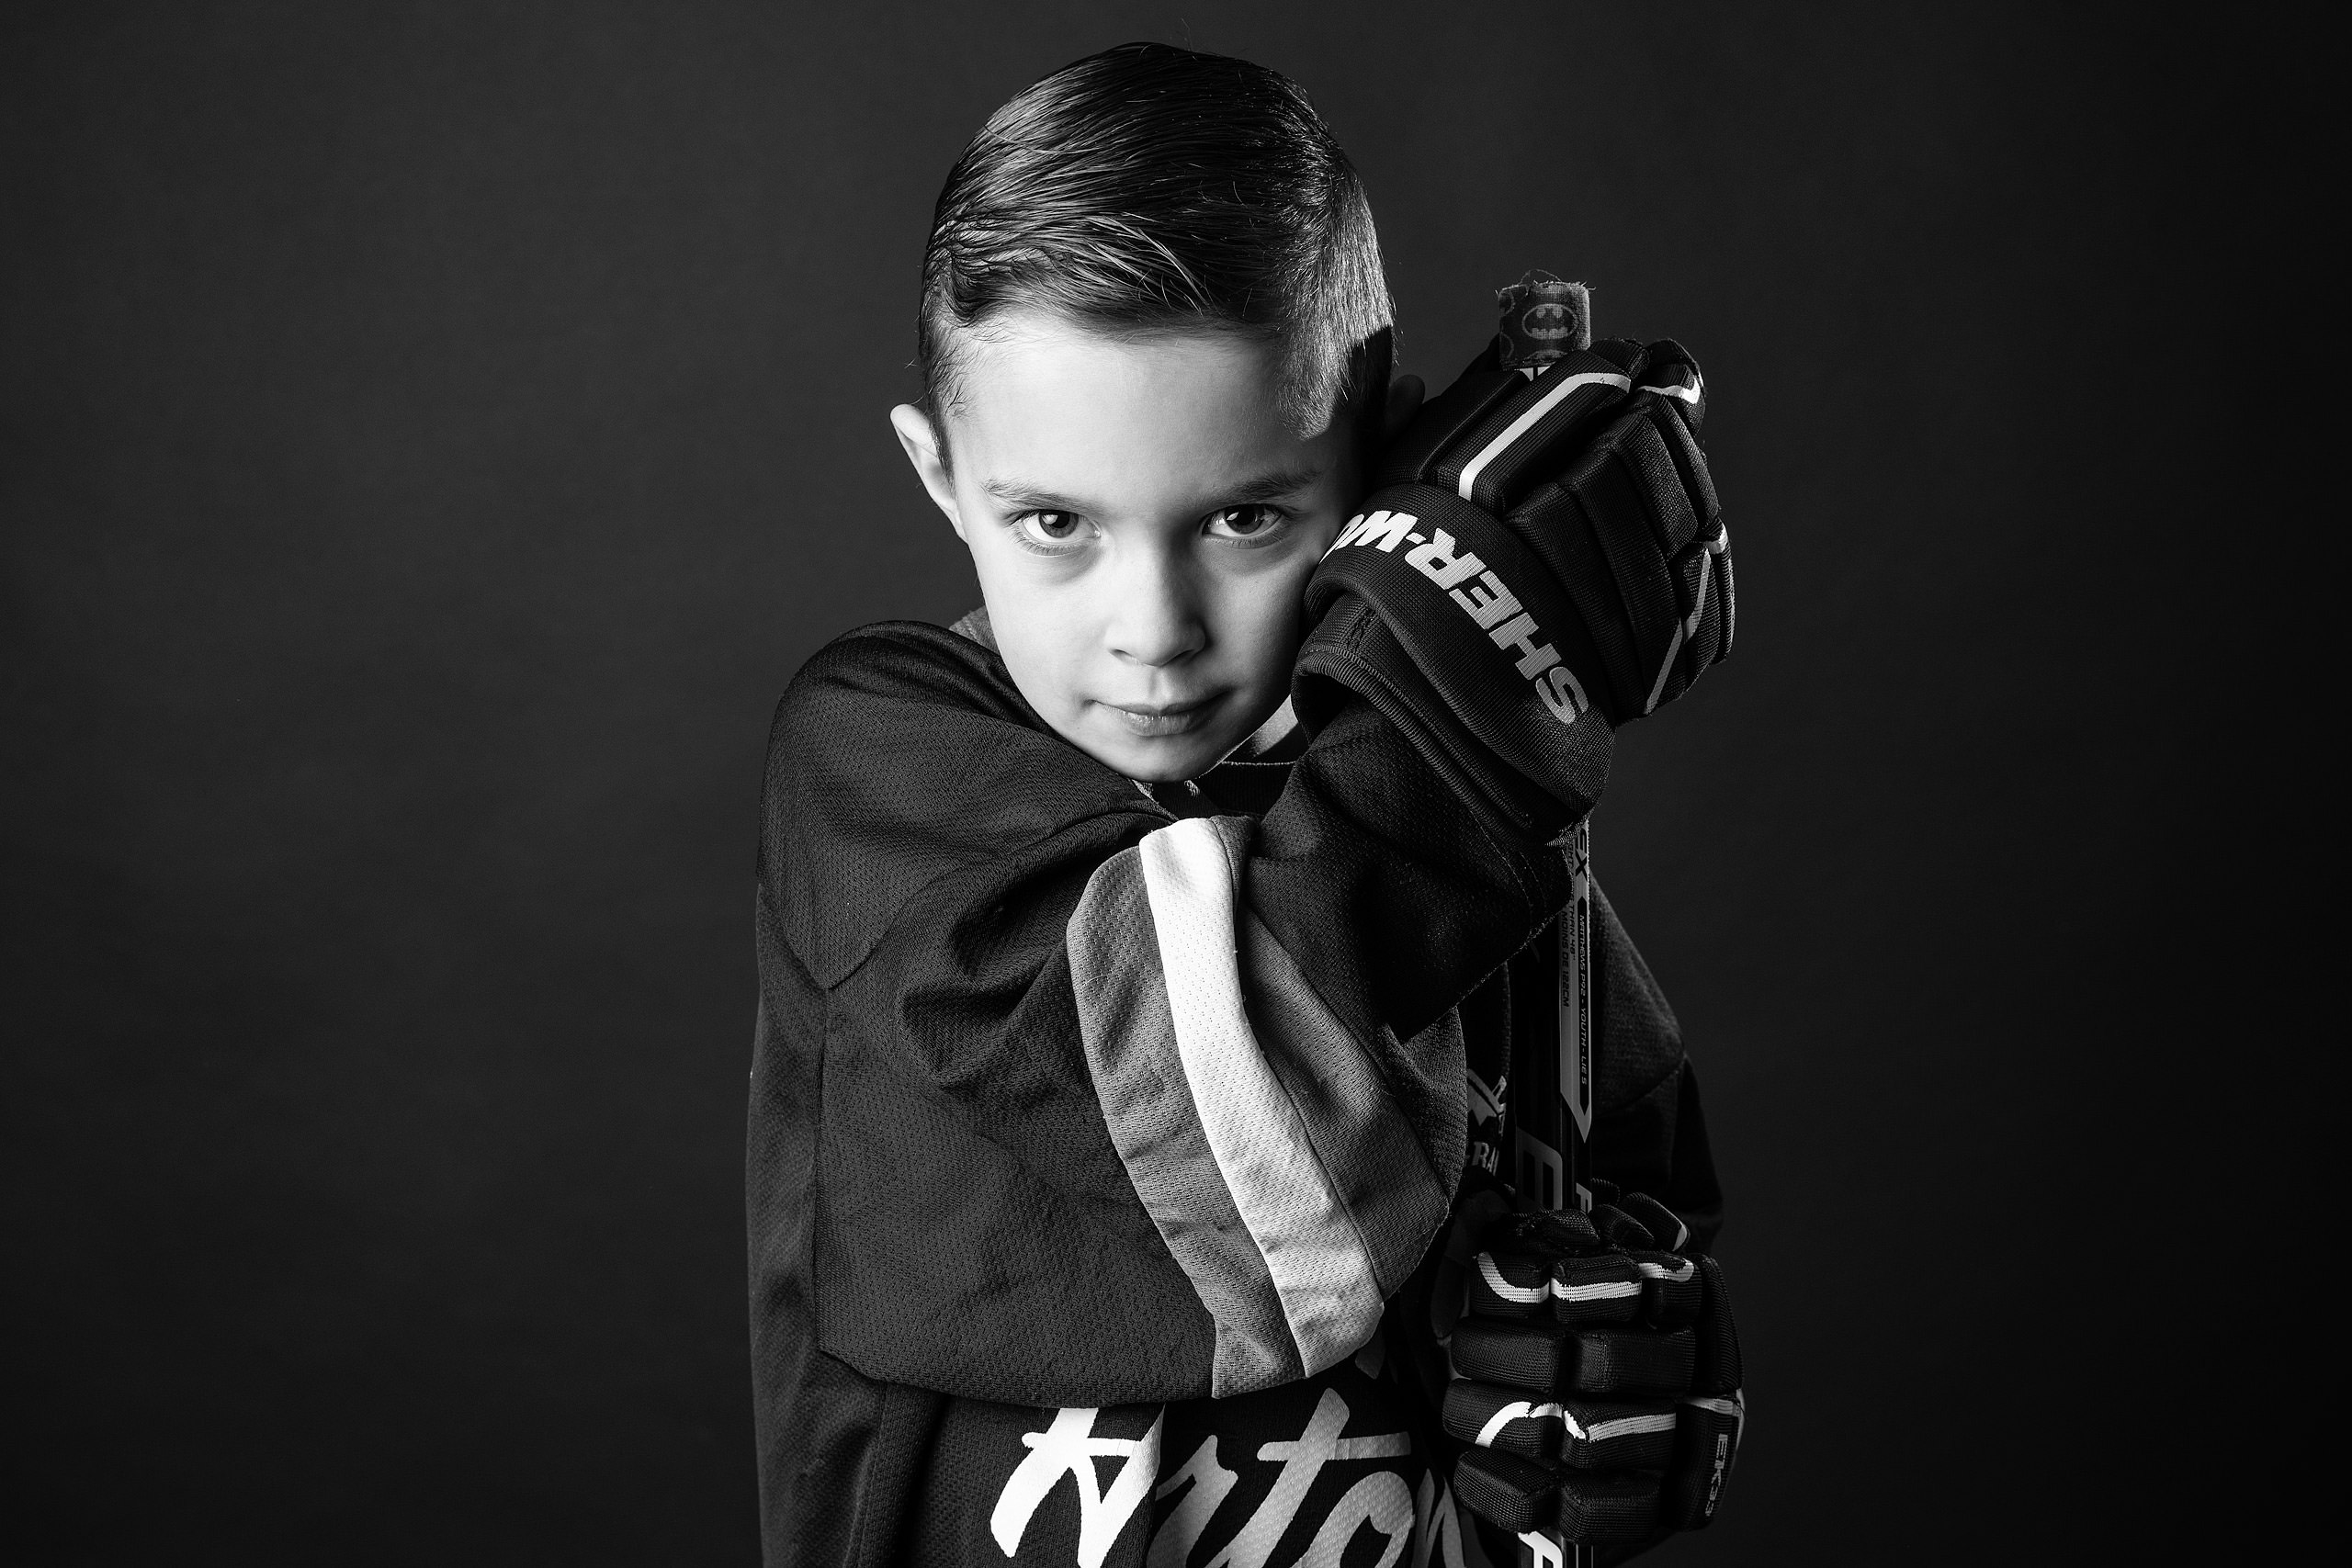 young boy posing with his hockey stick taken by family photographer sean leblanc